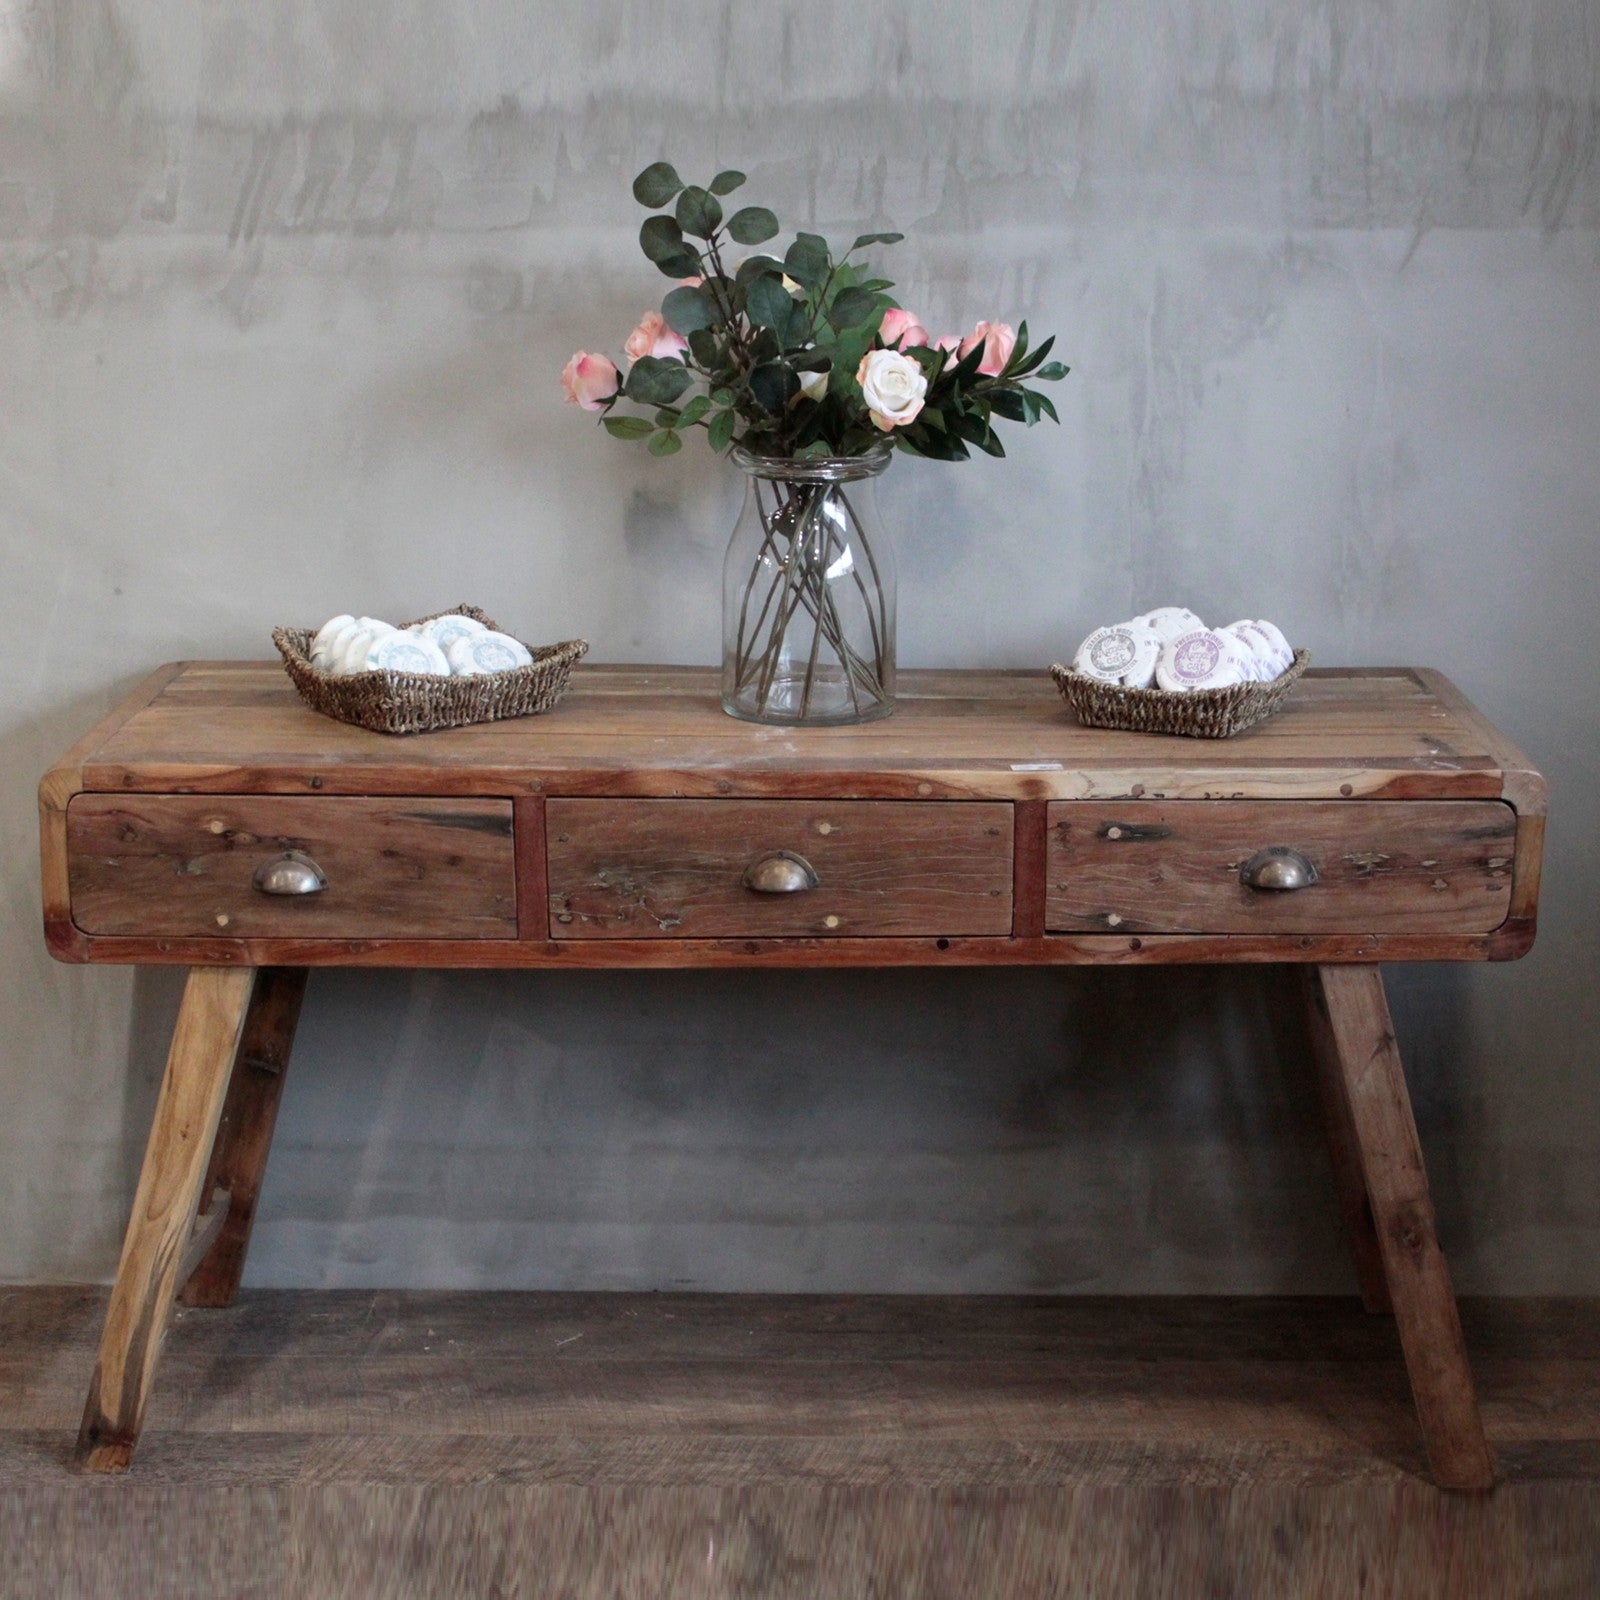 Console Table - Recycled Wood - 150x50x80cm, Furniture by Low Cost Gifts